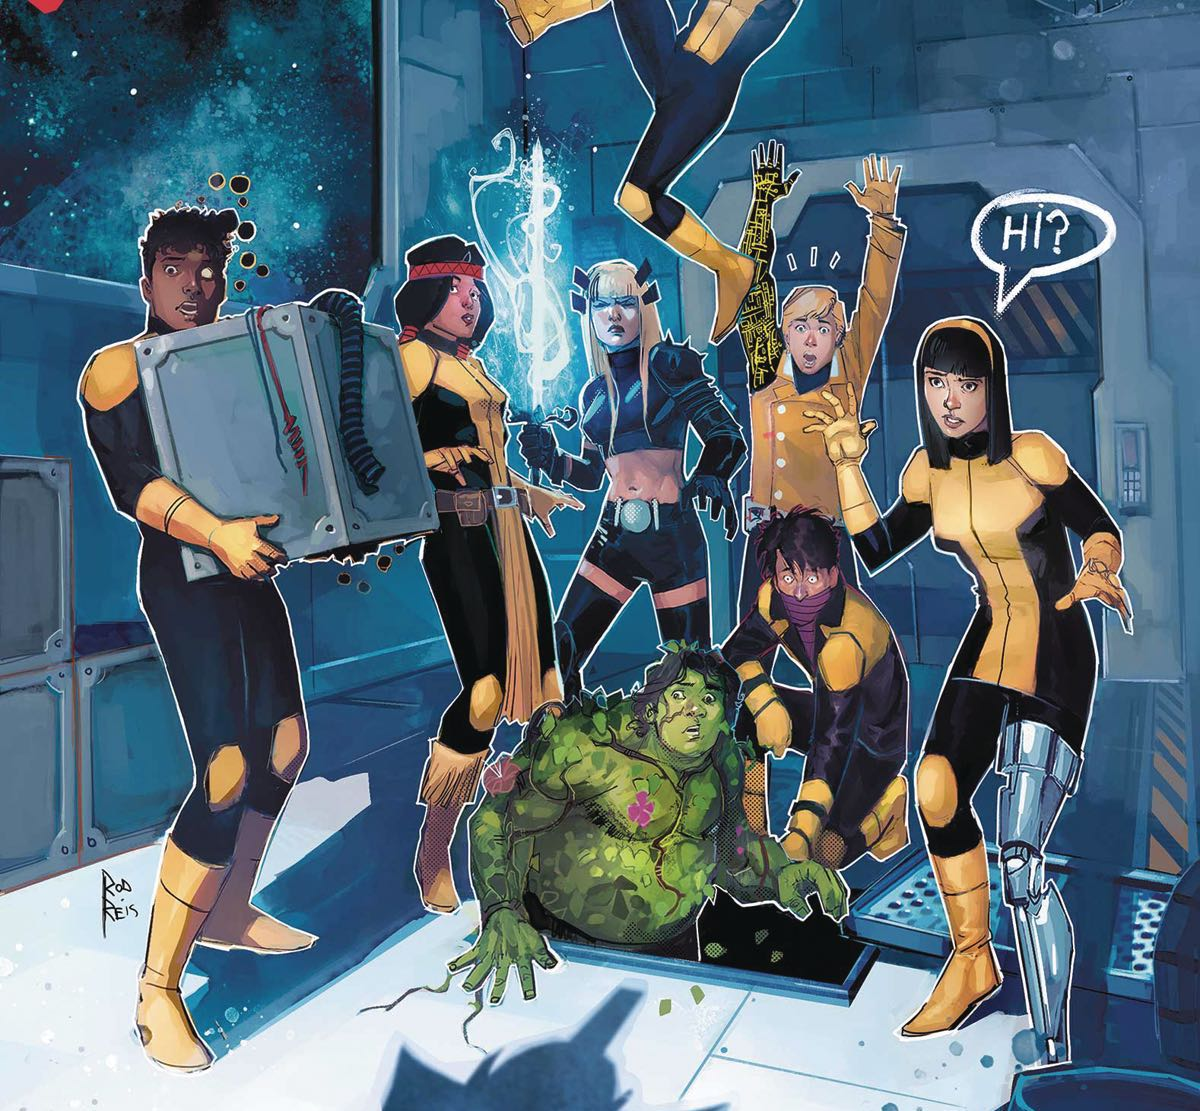 The New Mutants take on a mission in space alongside the Starjammers!